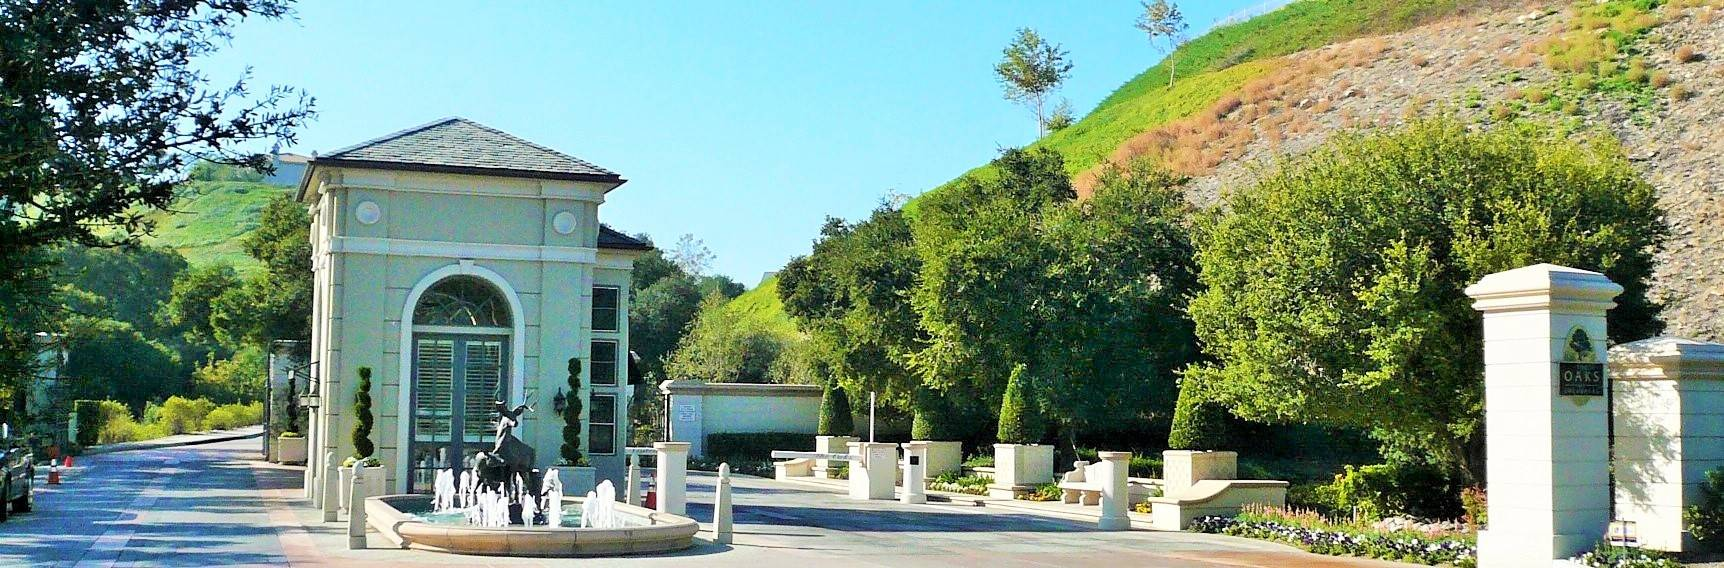 The oaks calabasas ca homes for sale for Calabasas oaks homes for sale